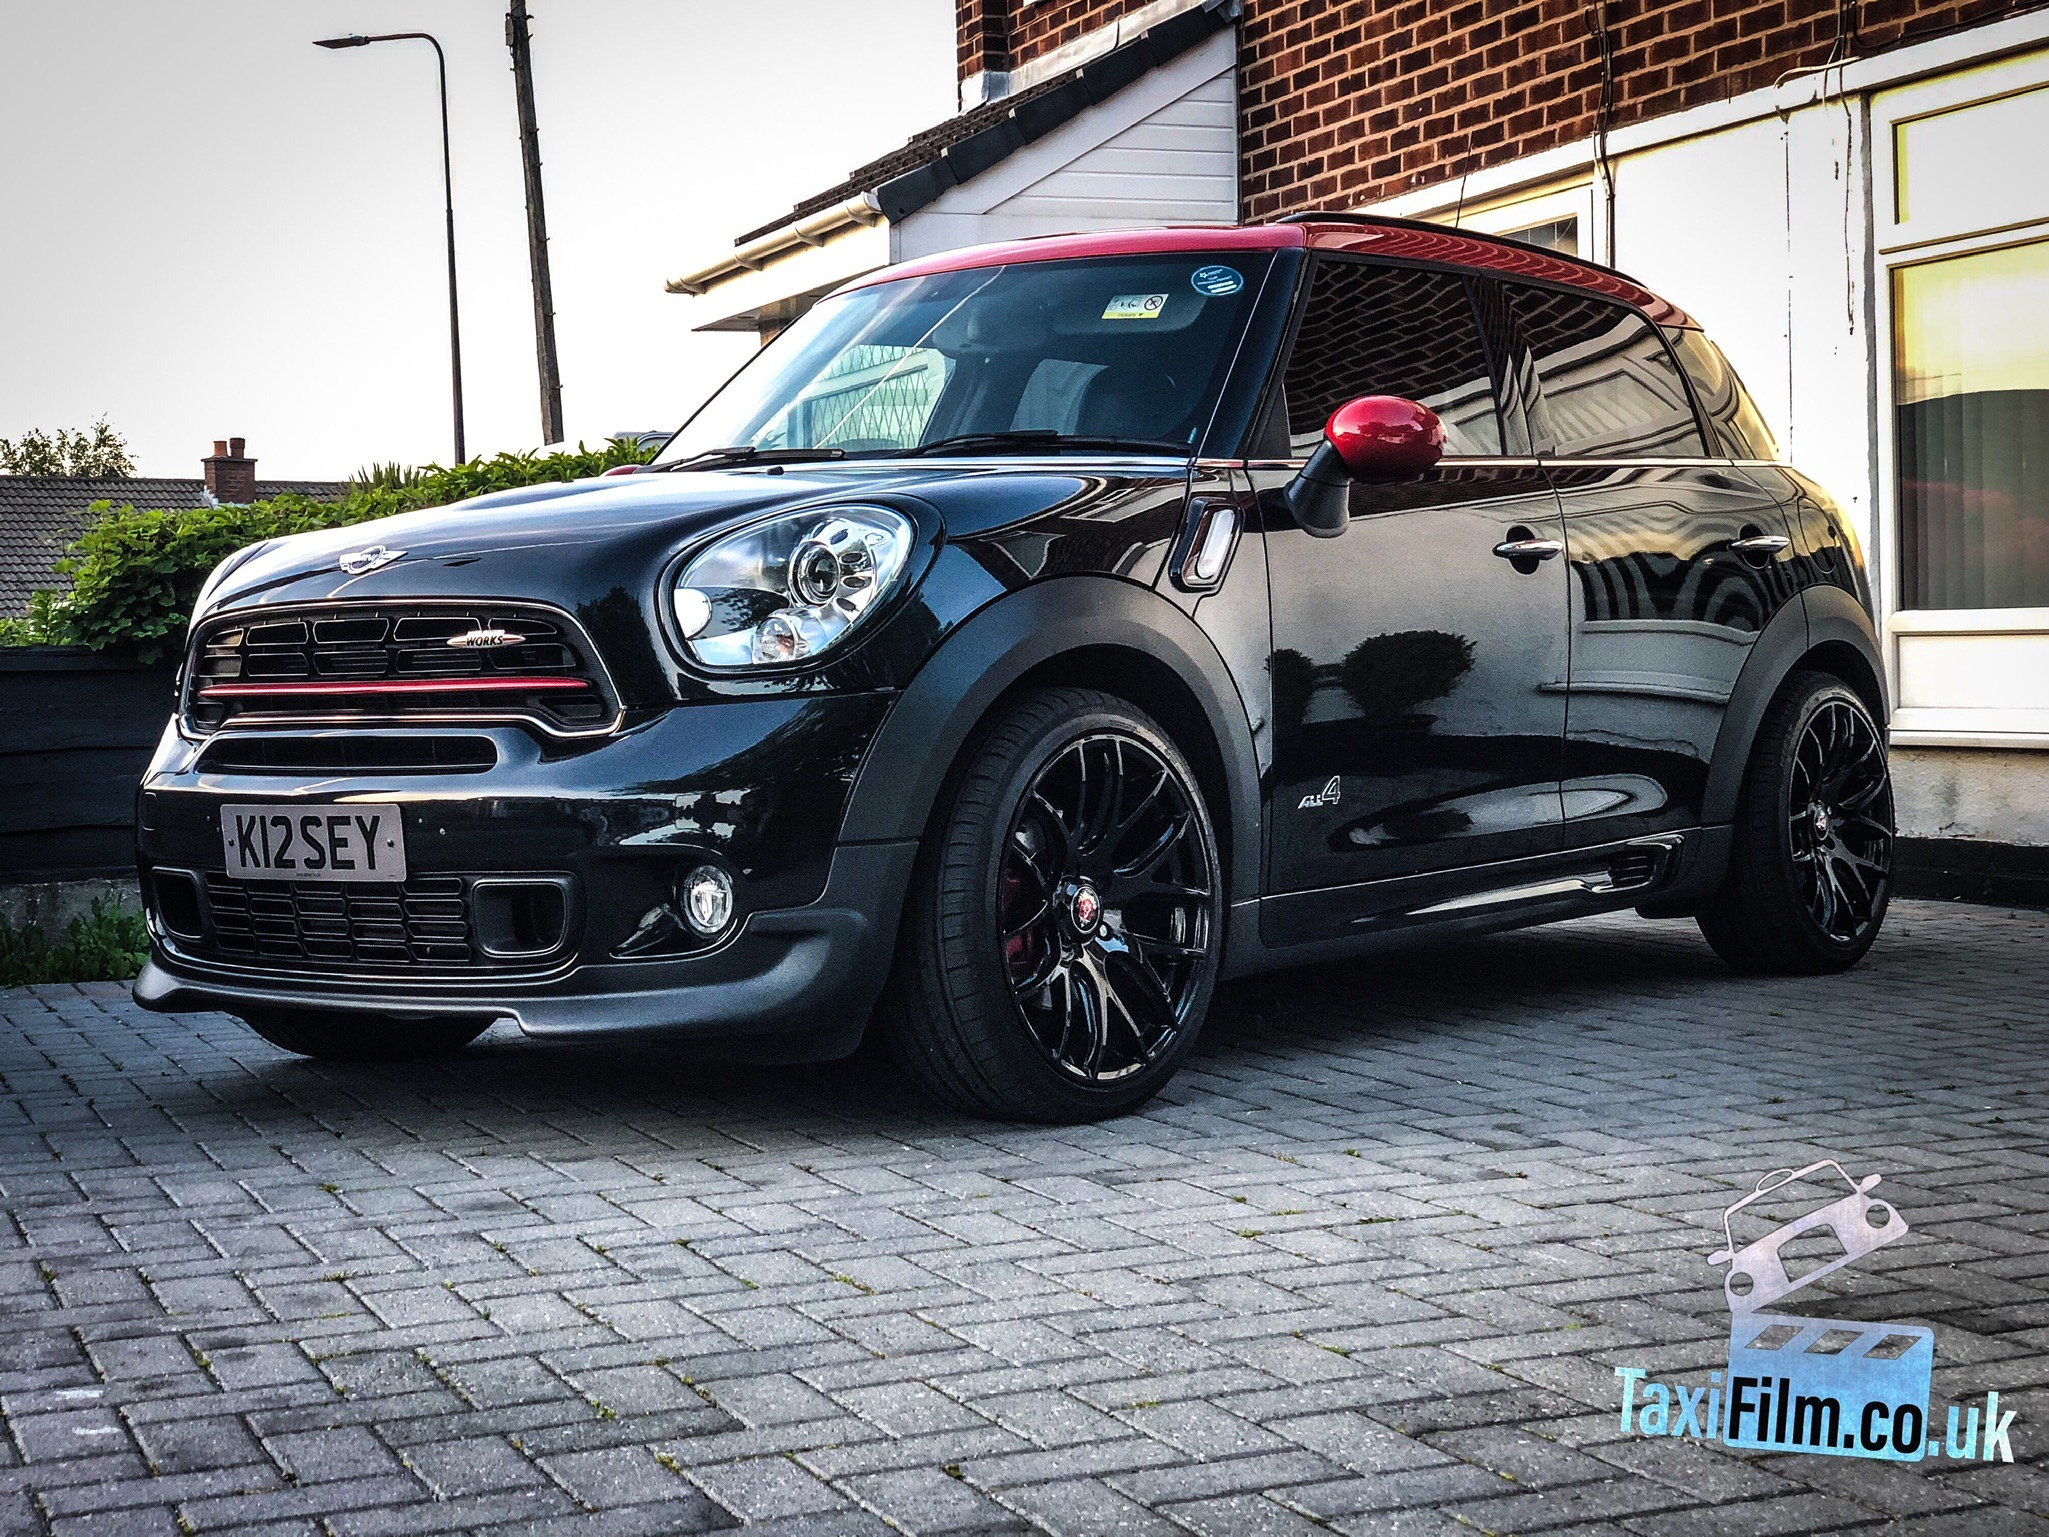 Black / Red Mini Countryman 2016, John Cooper Works,  Manchester ref R0001